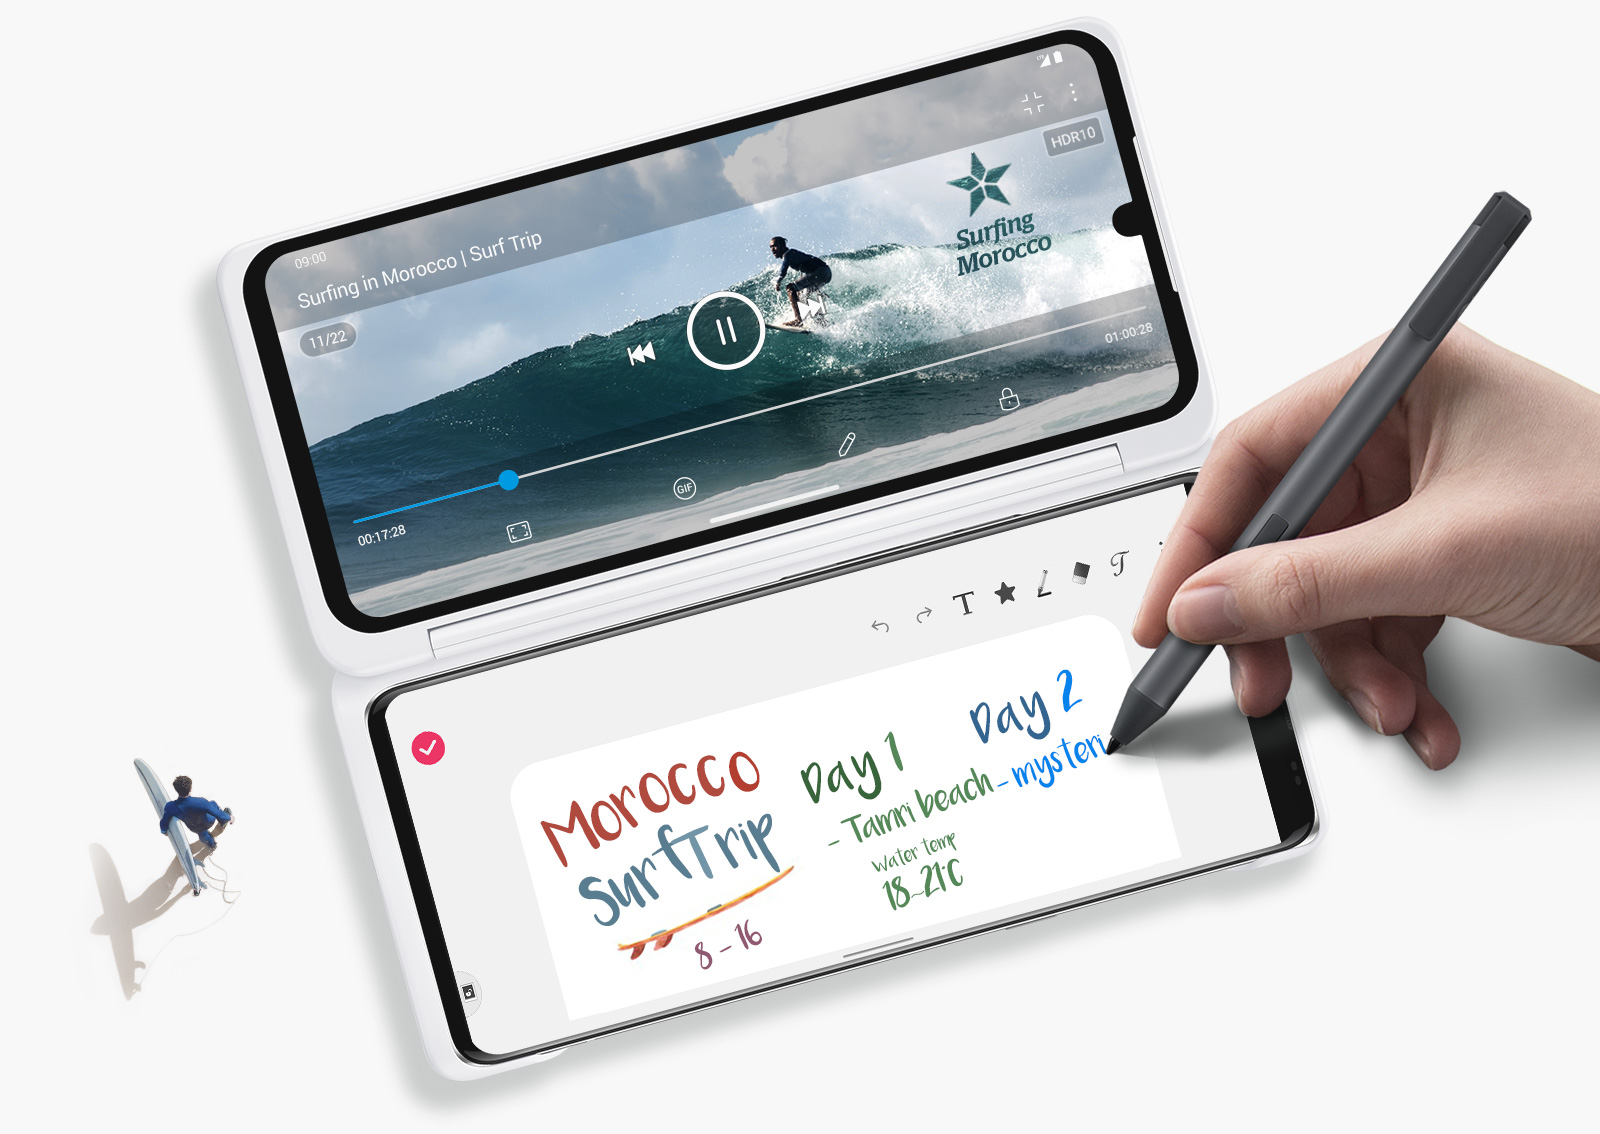 Lifestyle image of a user watching a video on the LG Dual Screen while taking notes on the LG VELVET with a compatible active stylus pen